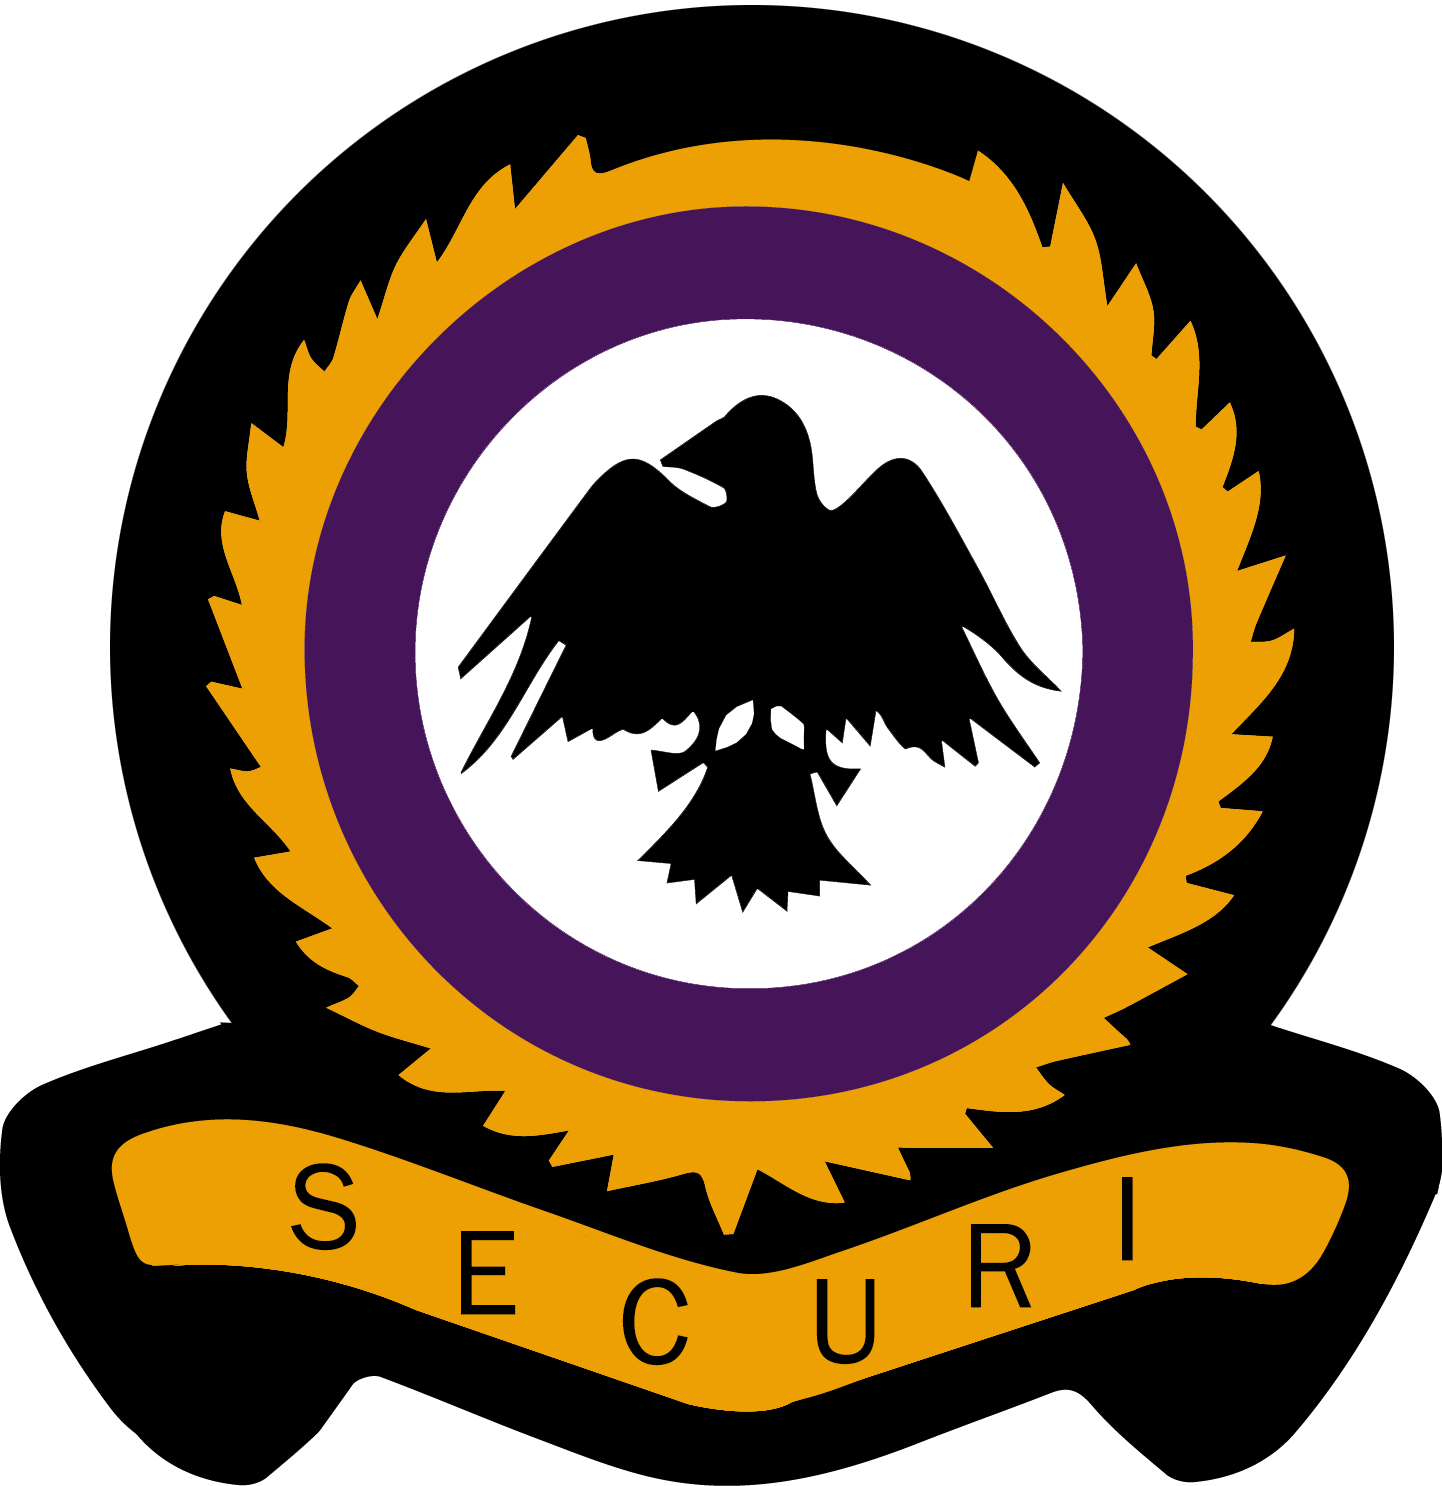 Securi-Logo-Illustration-Modification